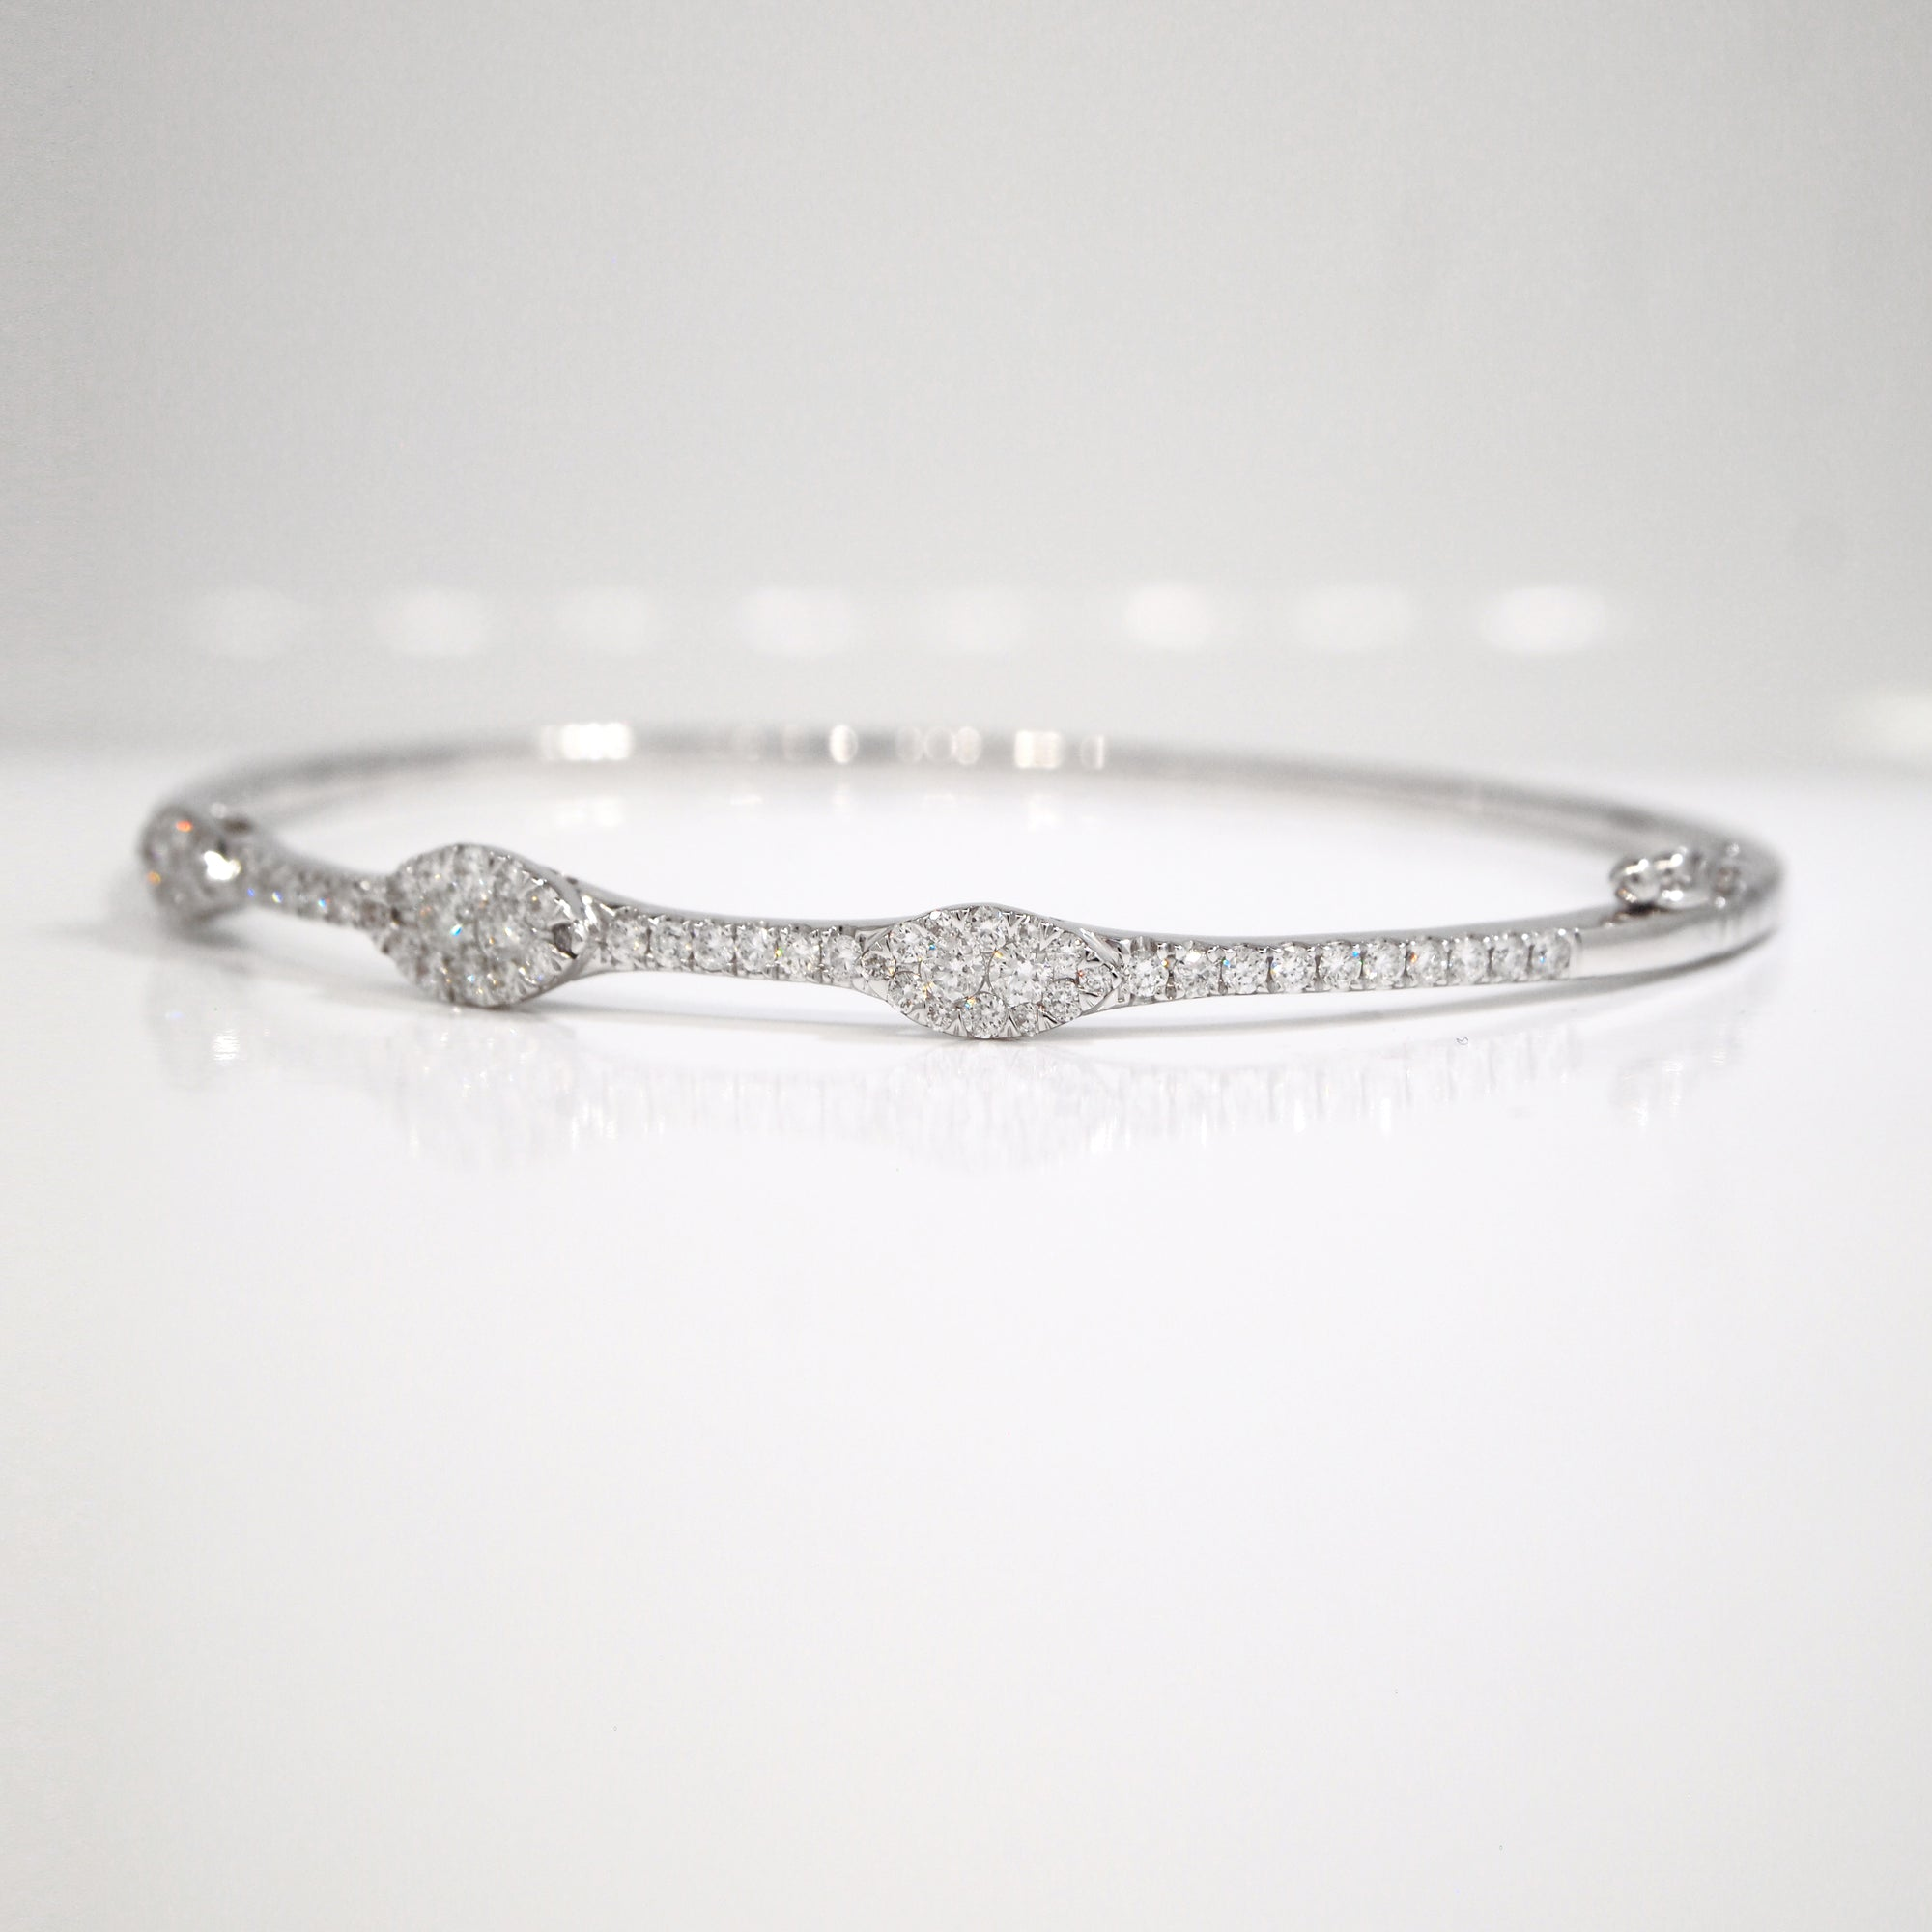 14K White Gold Marquis Shaped Diamond Bangle